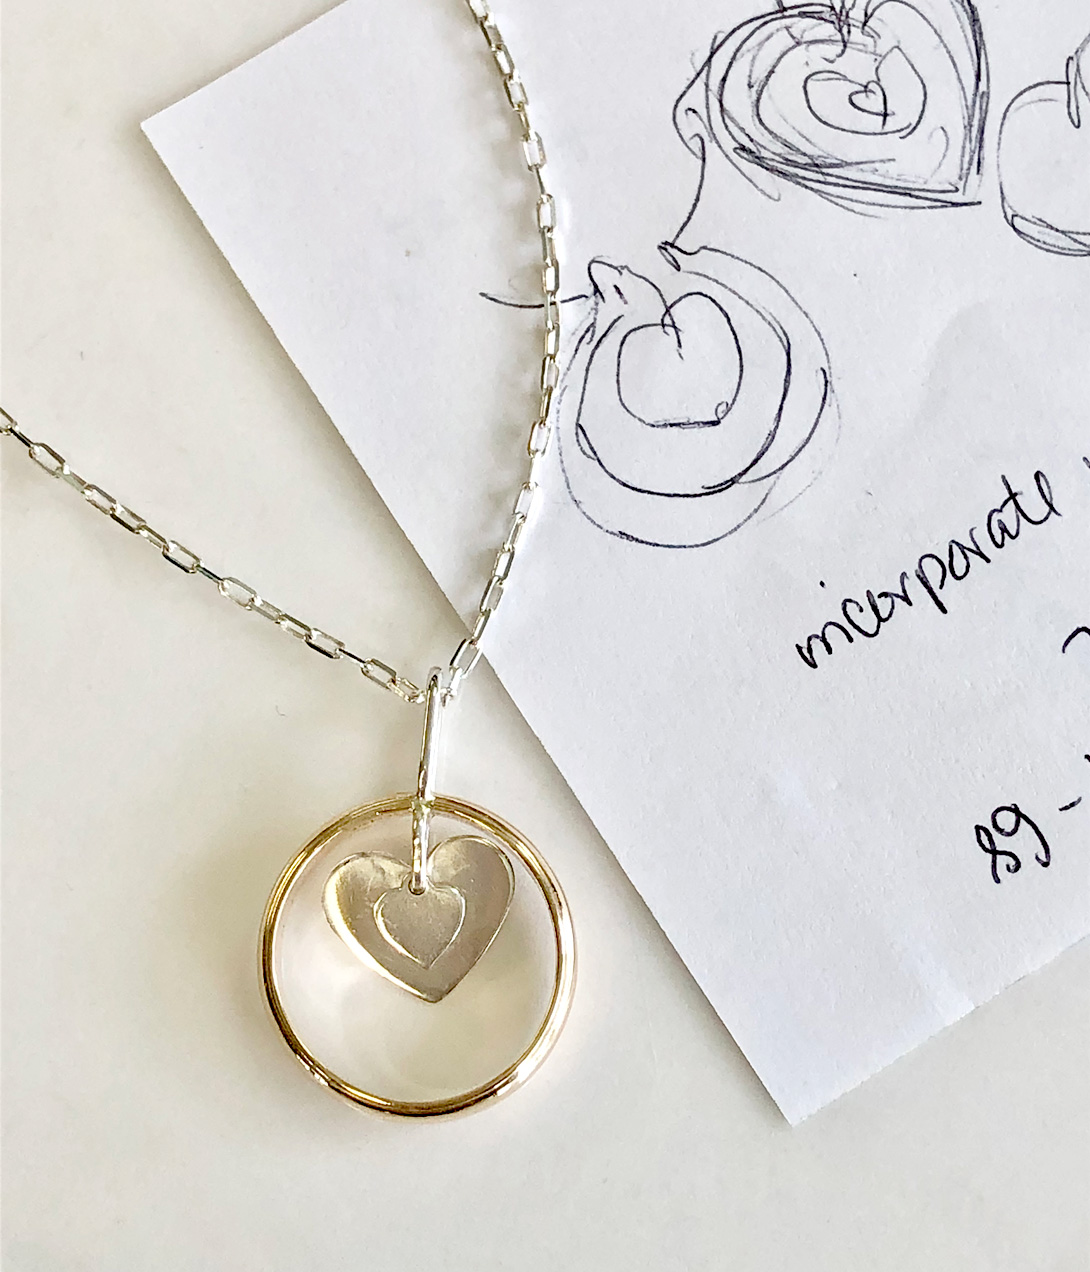 double heart pendant with design sketches